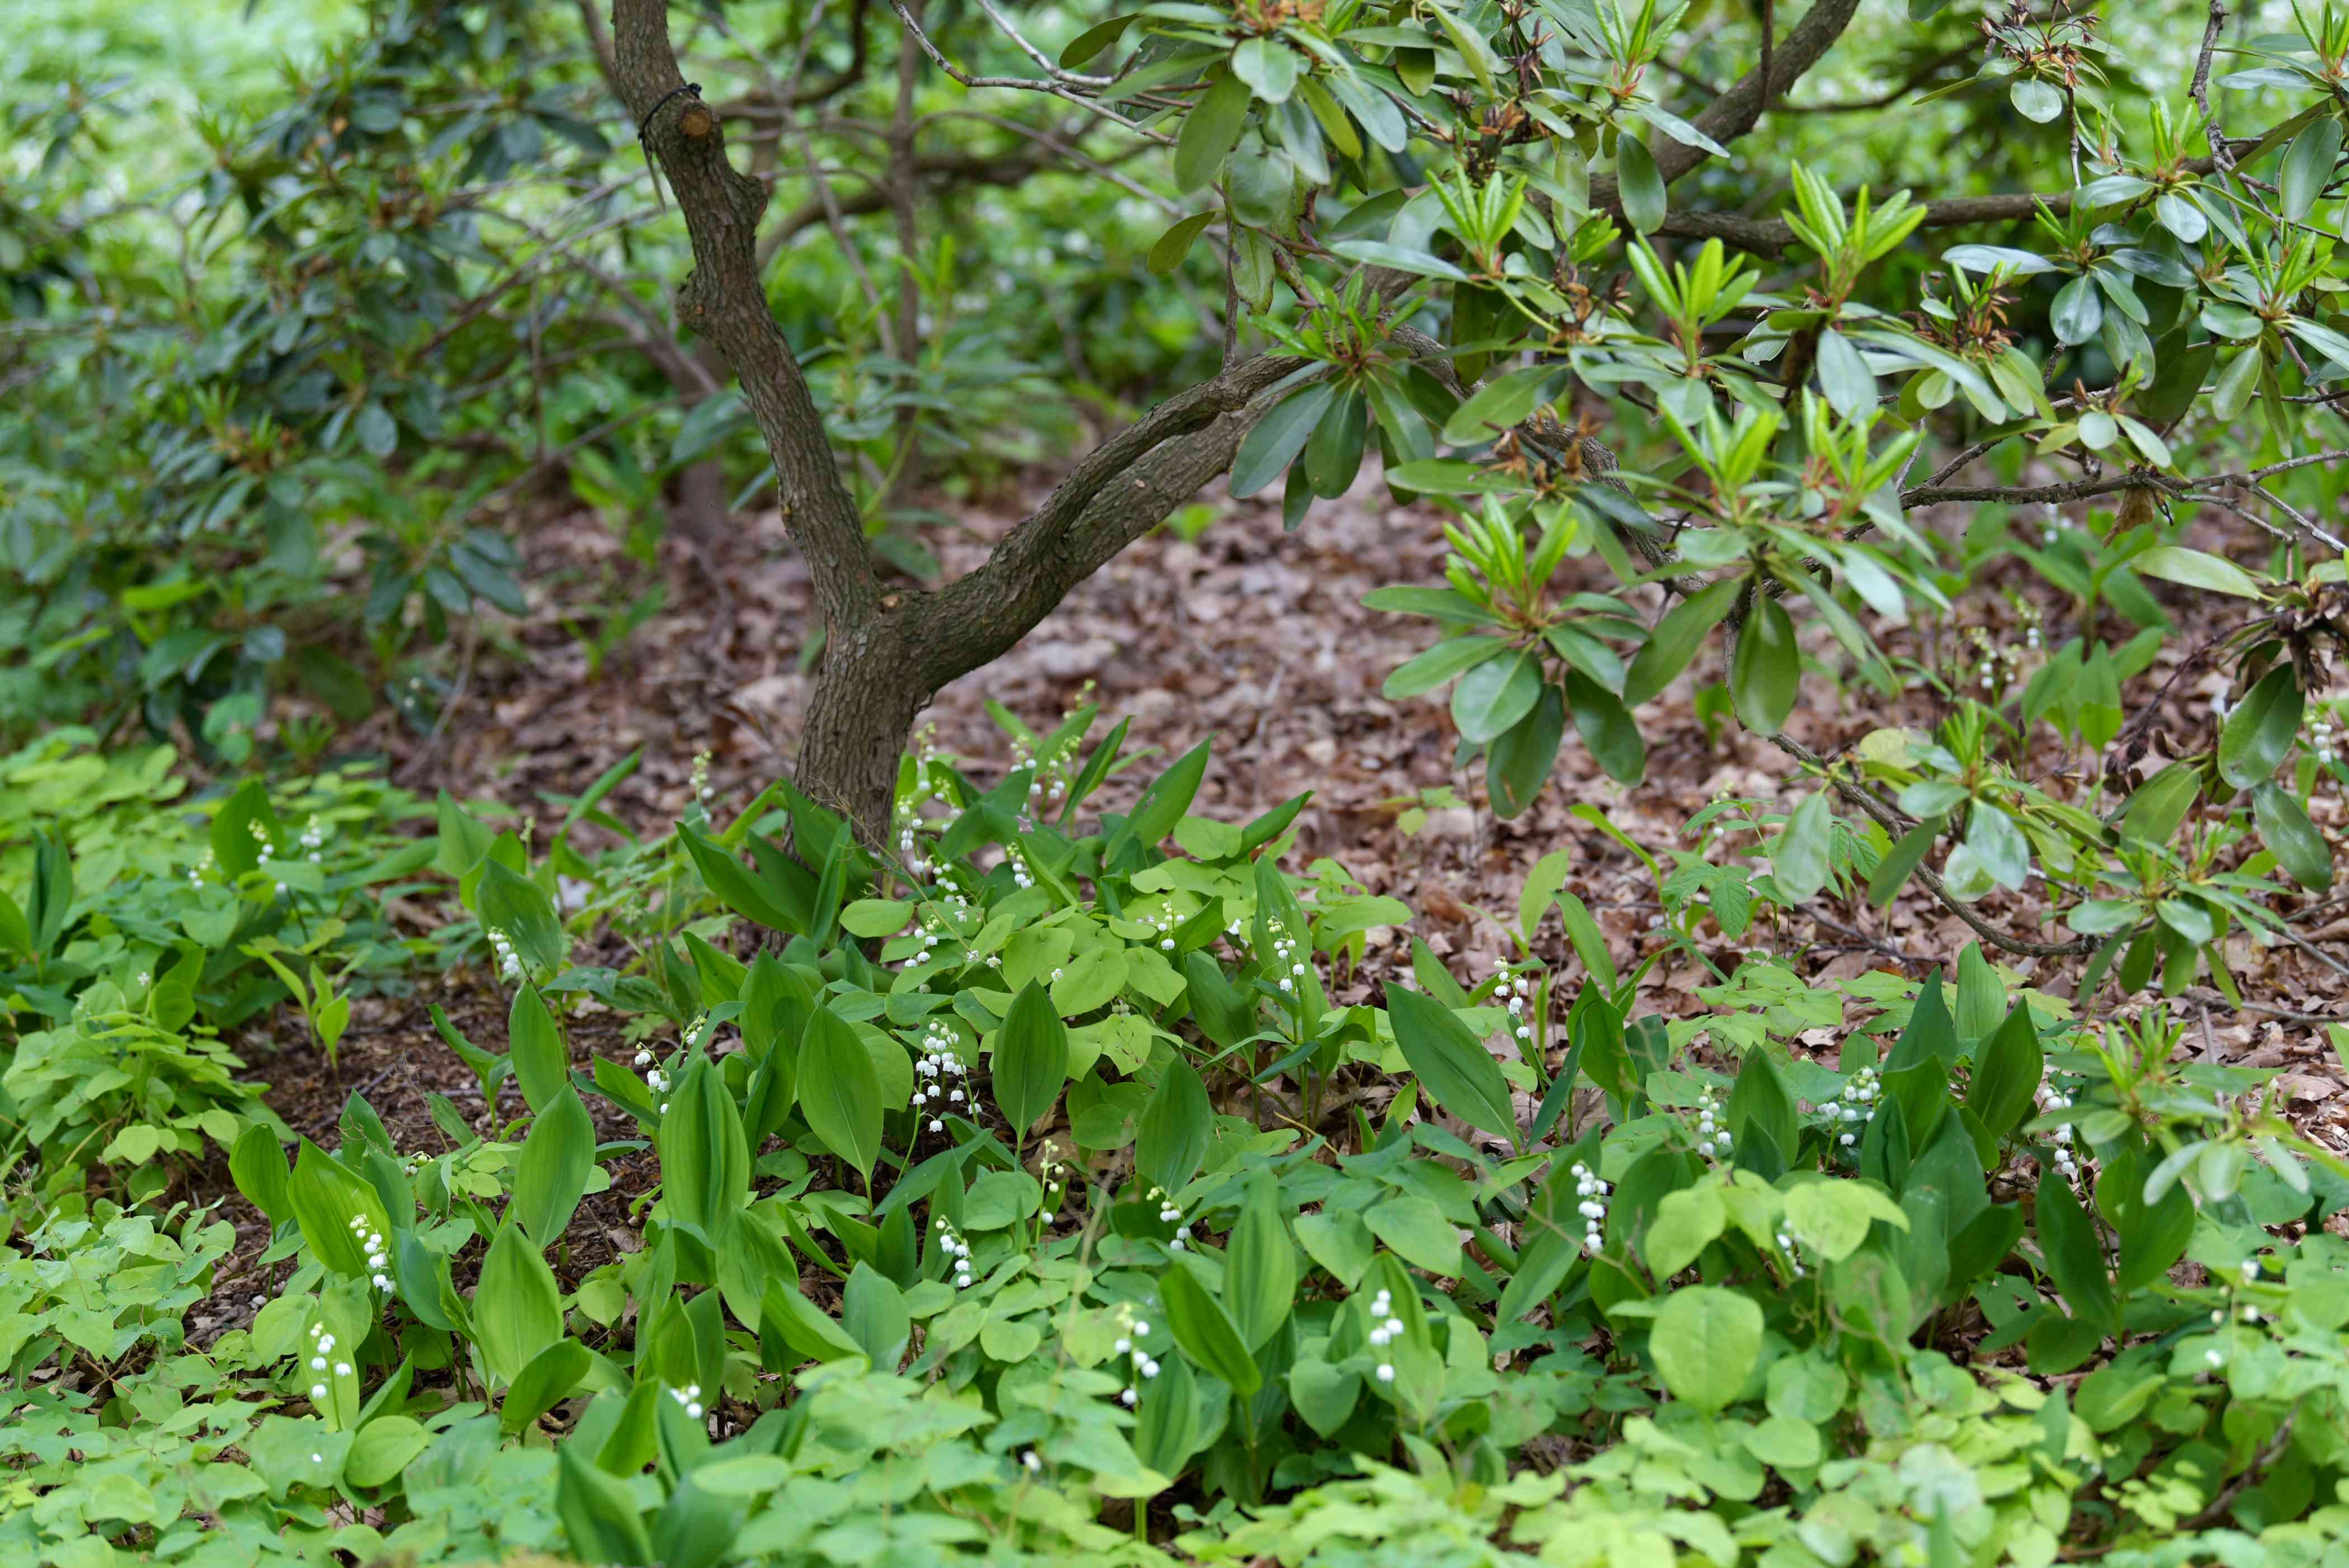 Lily of the valley plants surrounding tree base with petite white flowers